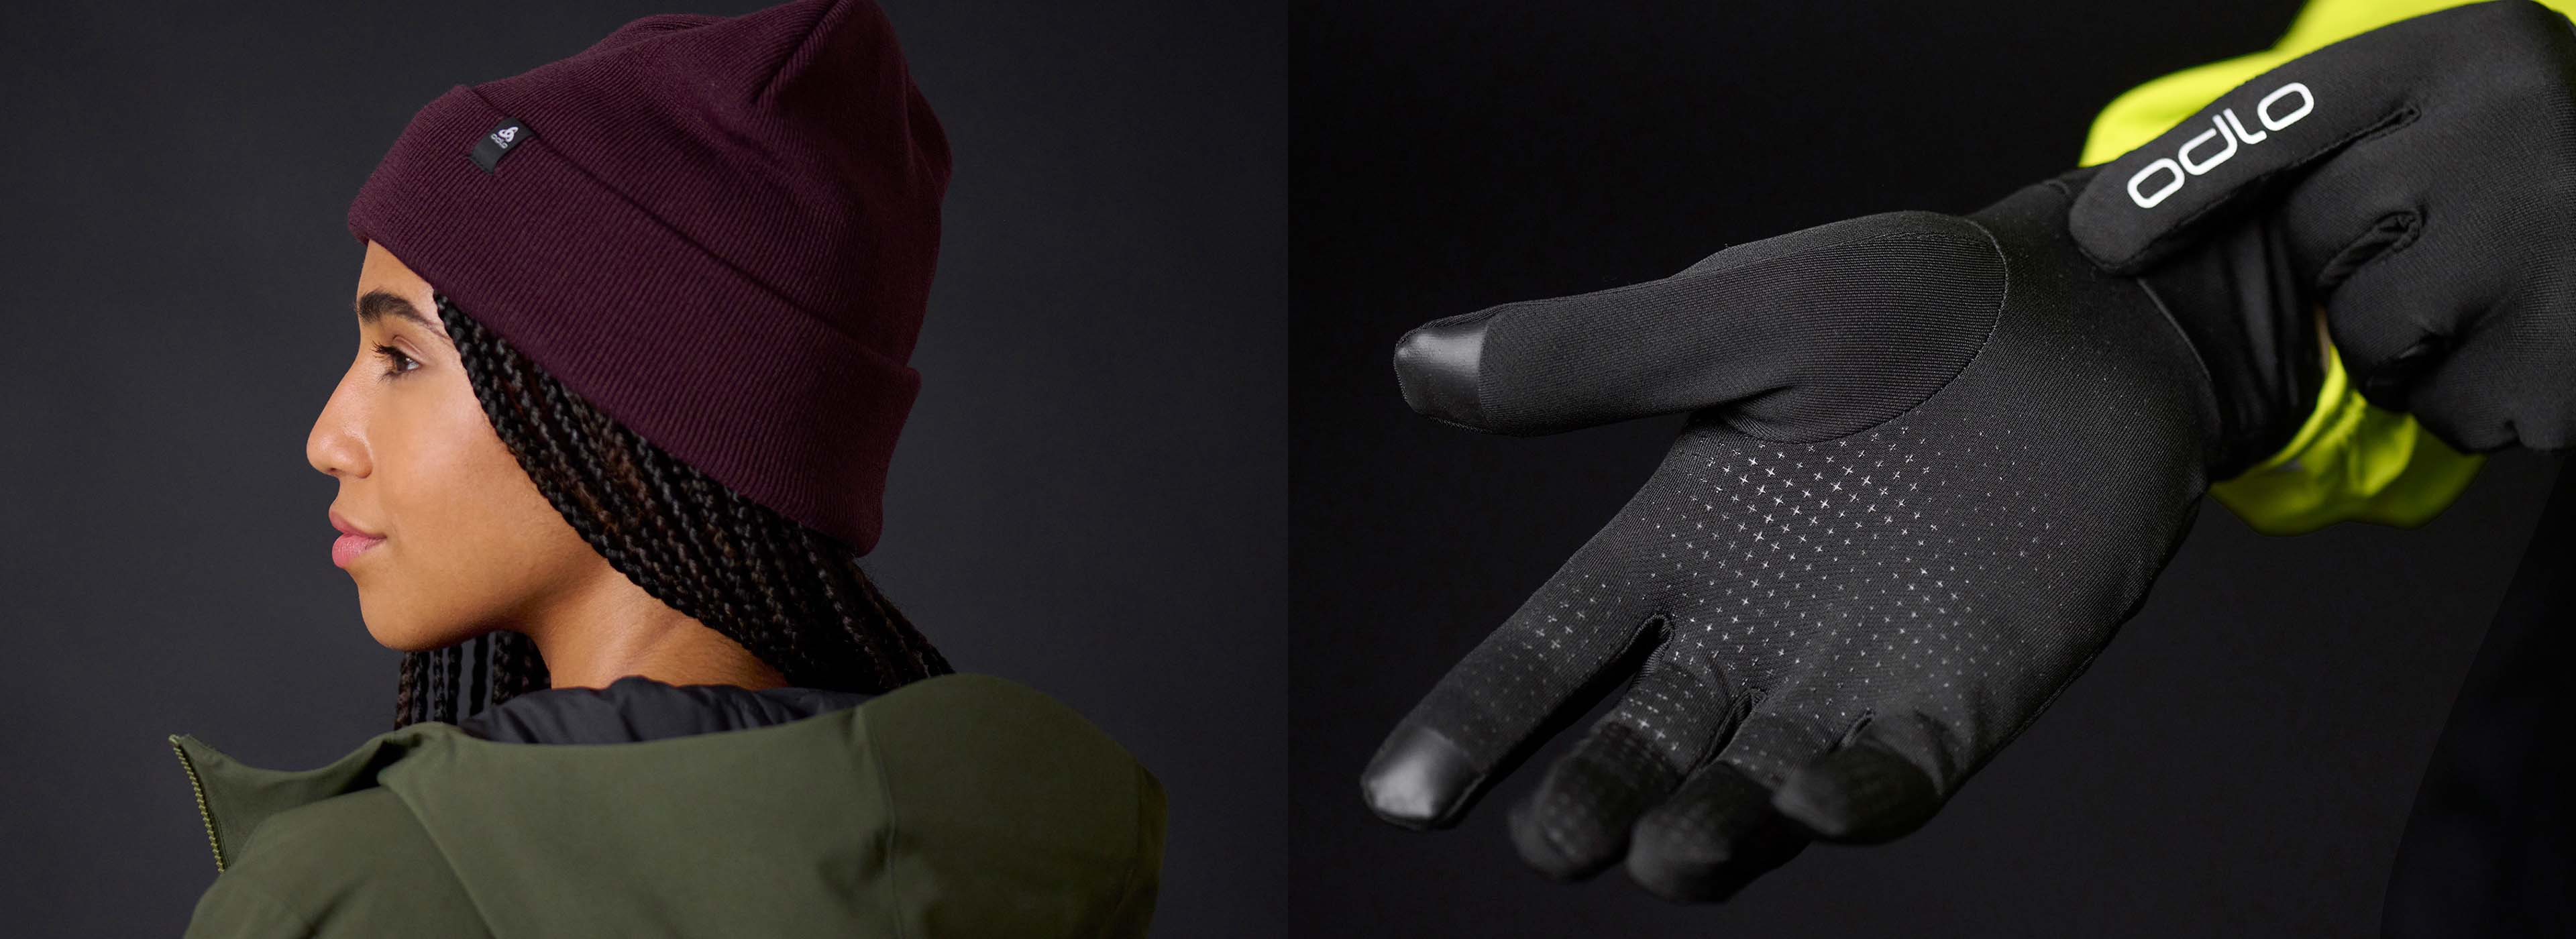 New headwear and gloves collection Fall Winter 2021